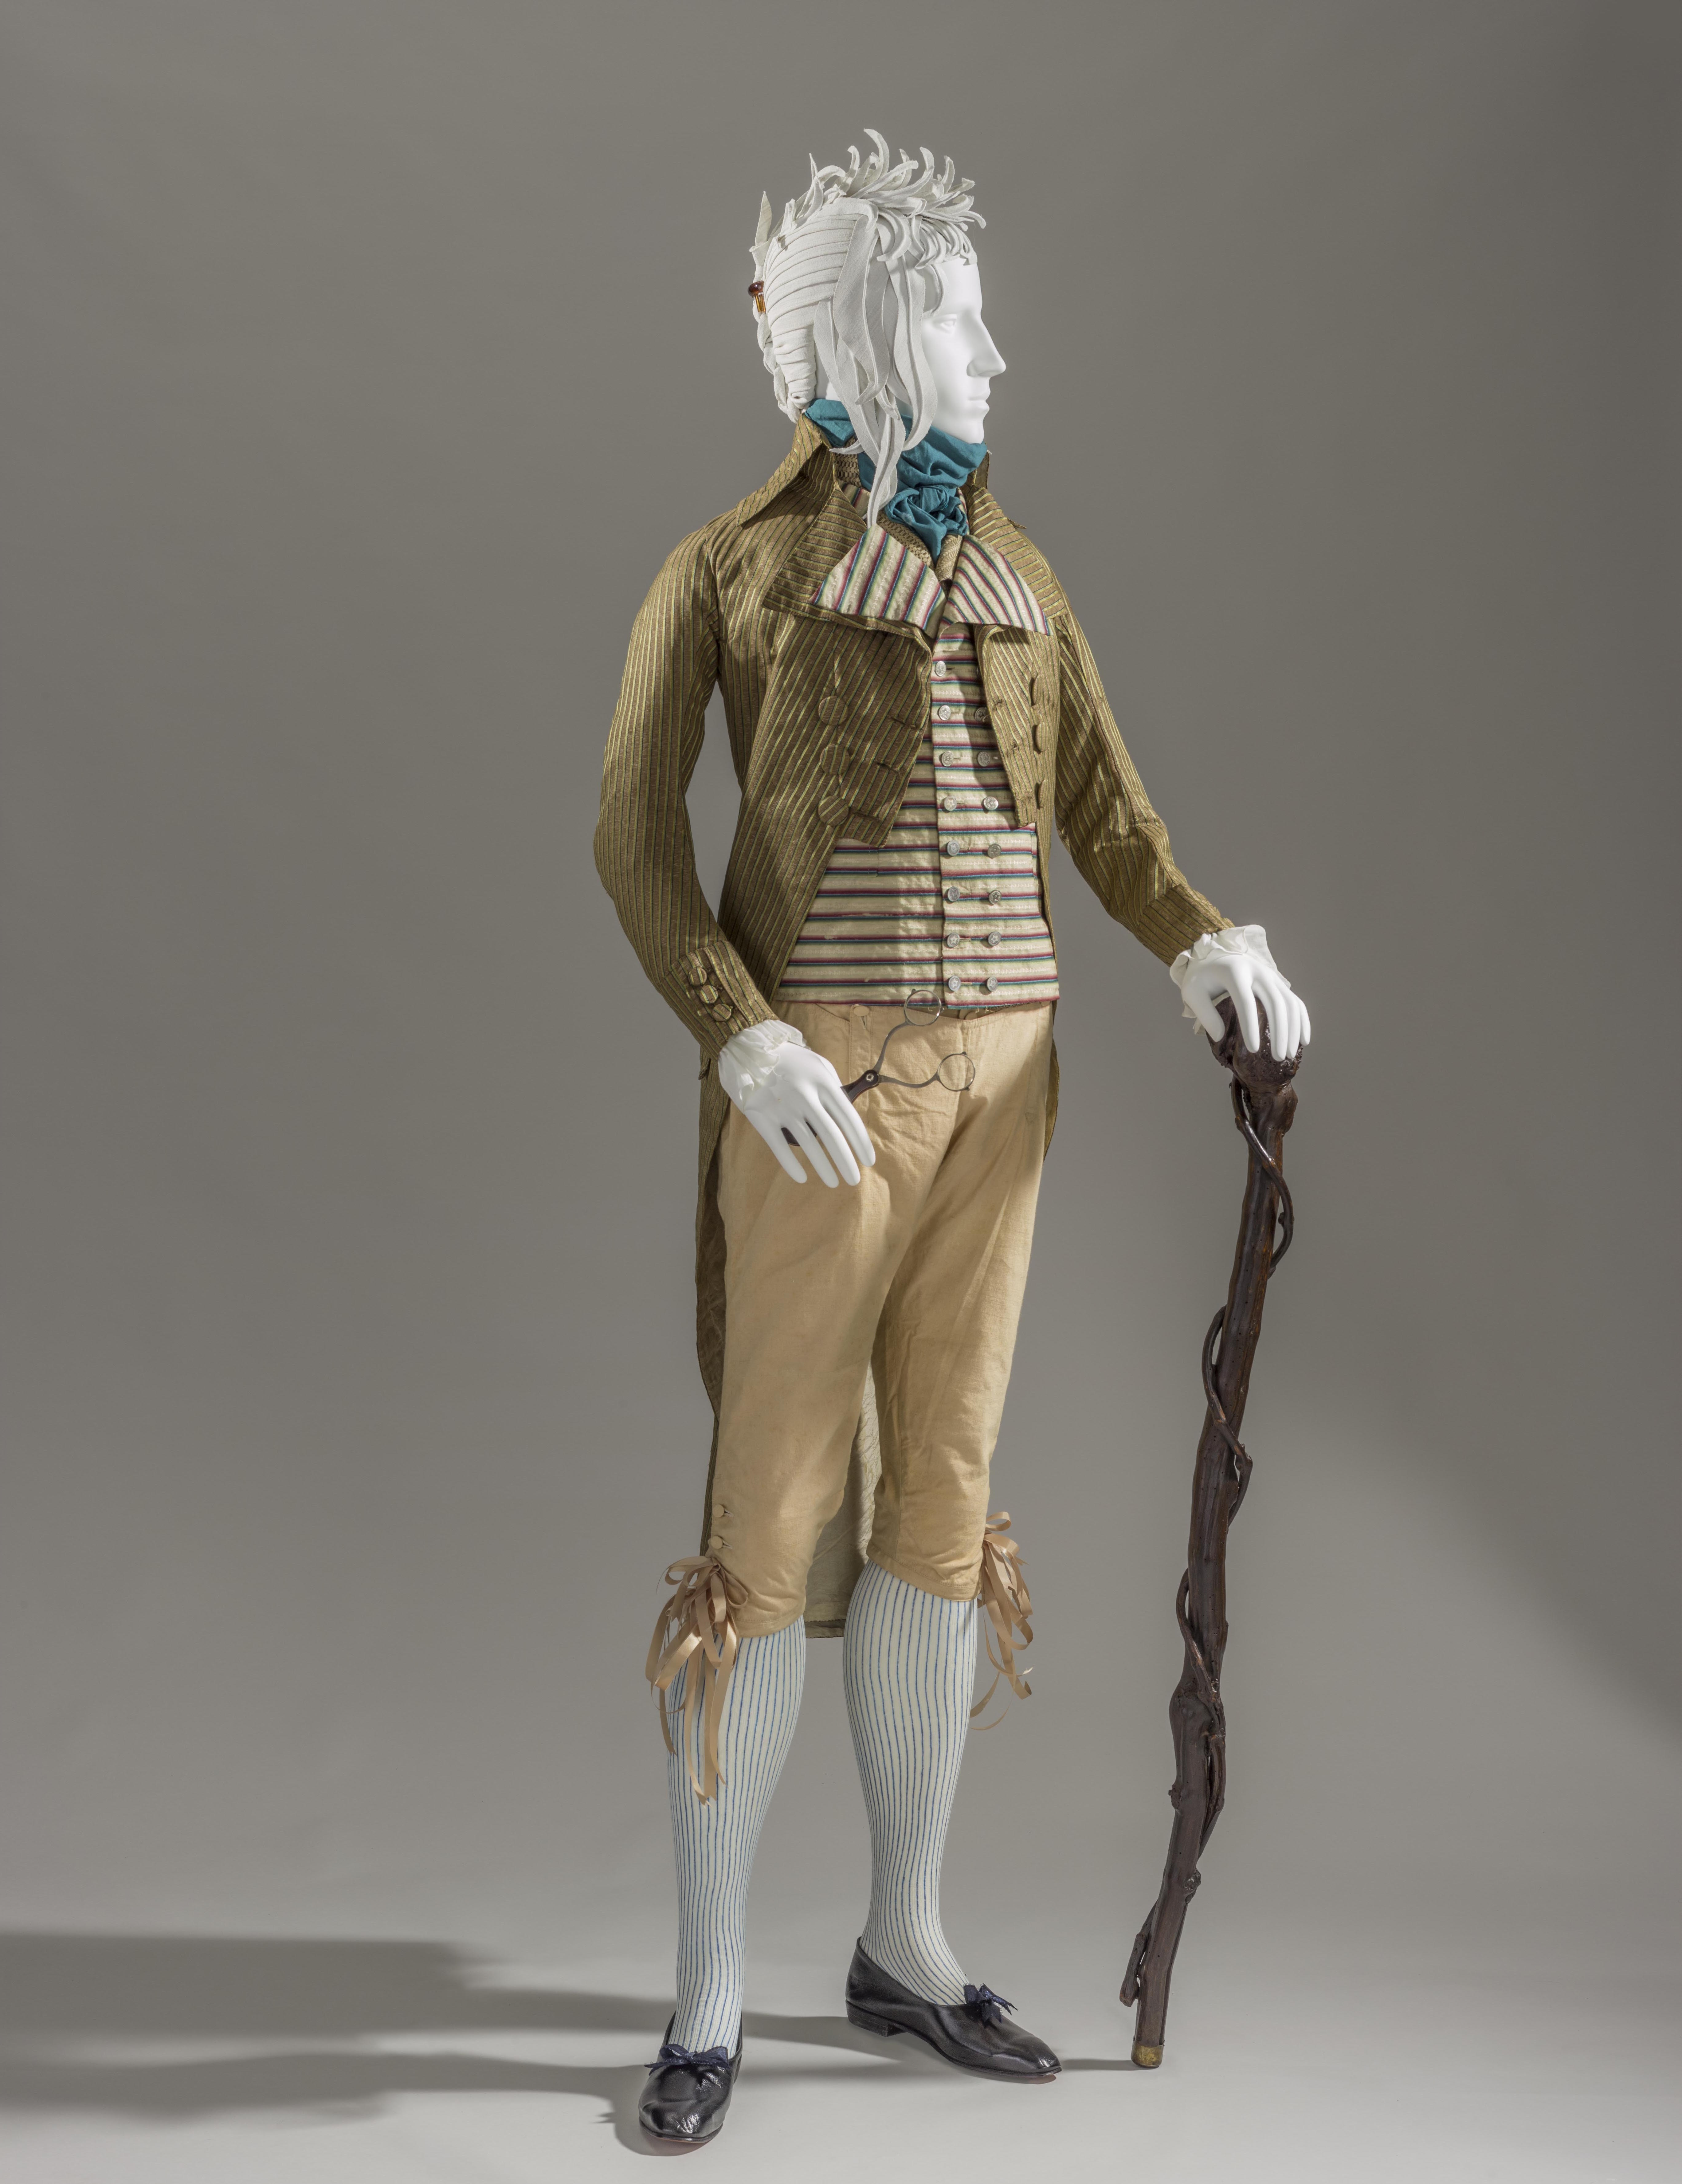 A typical 'Incroyable' ensemble (France, 1790s). Photo credit: © Museum associates/LACMA